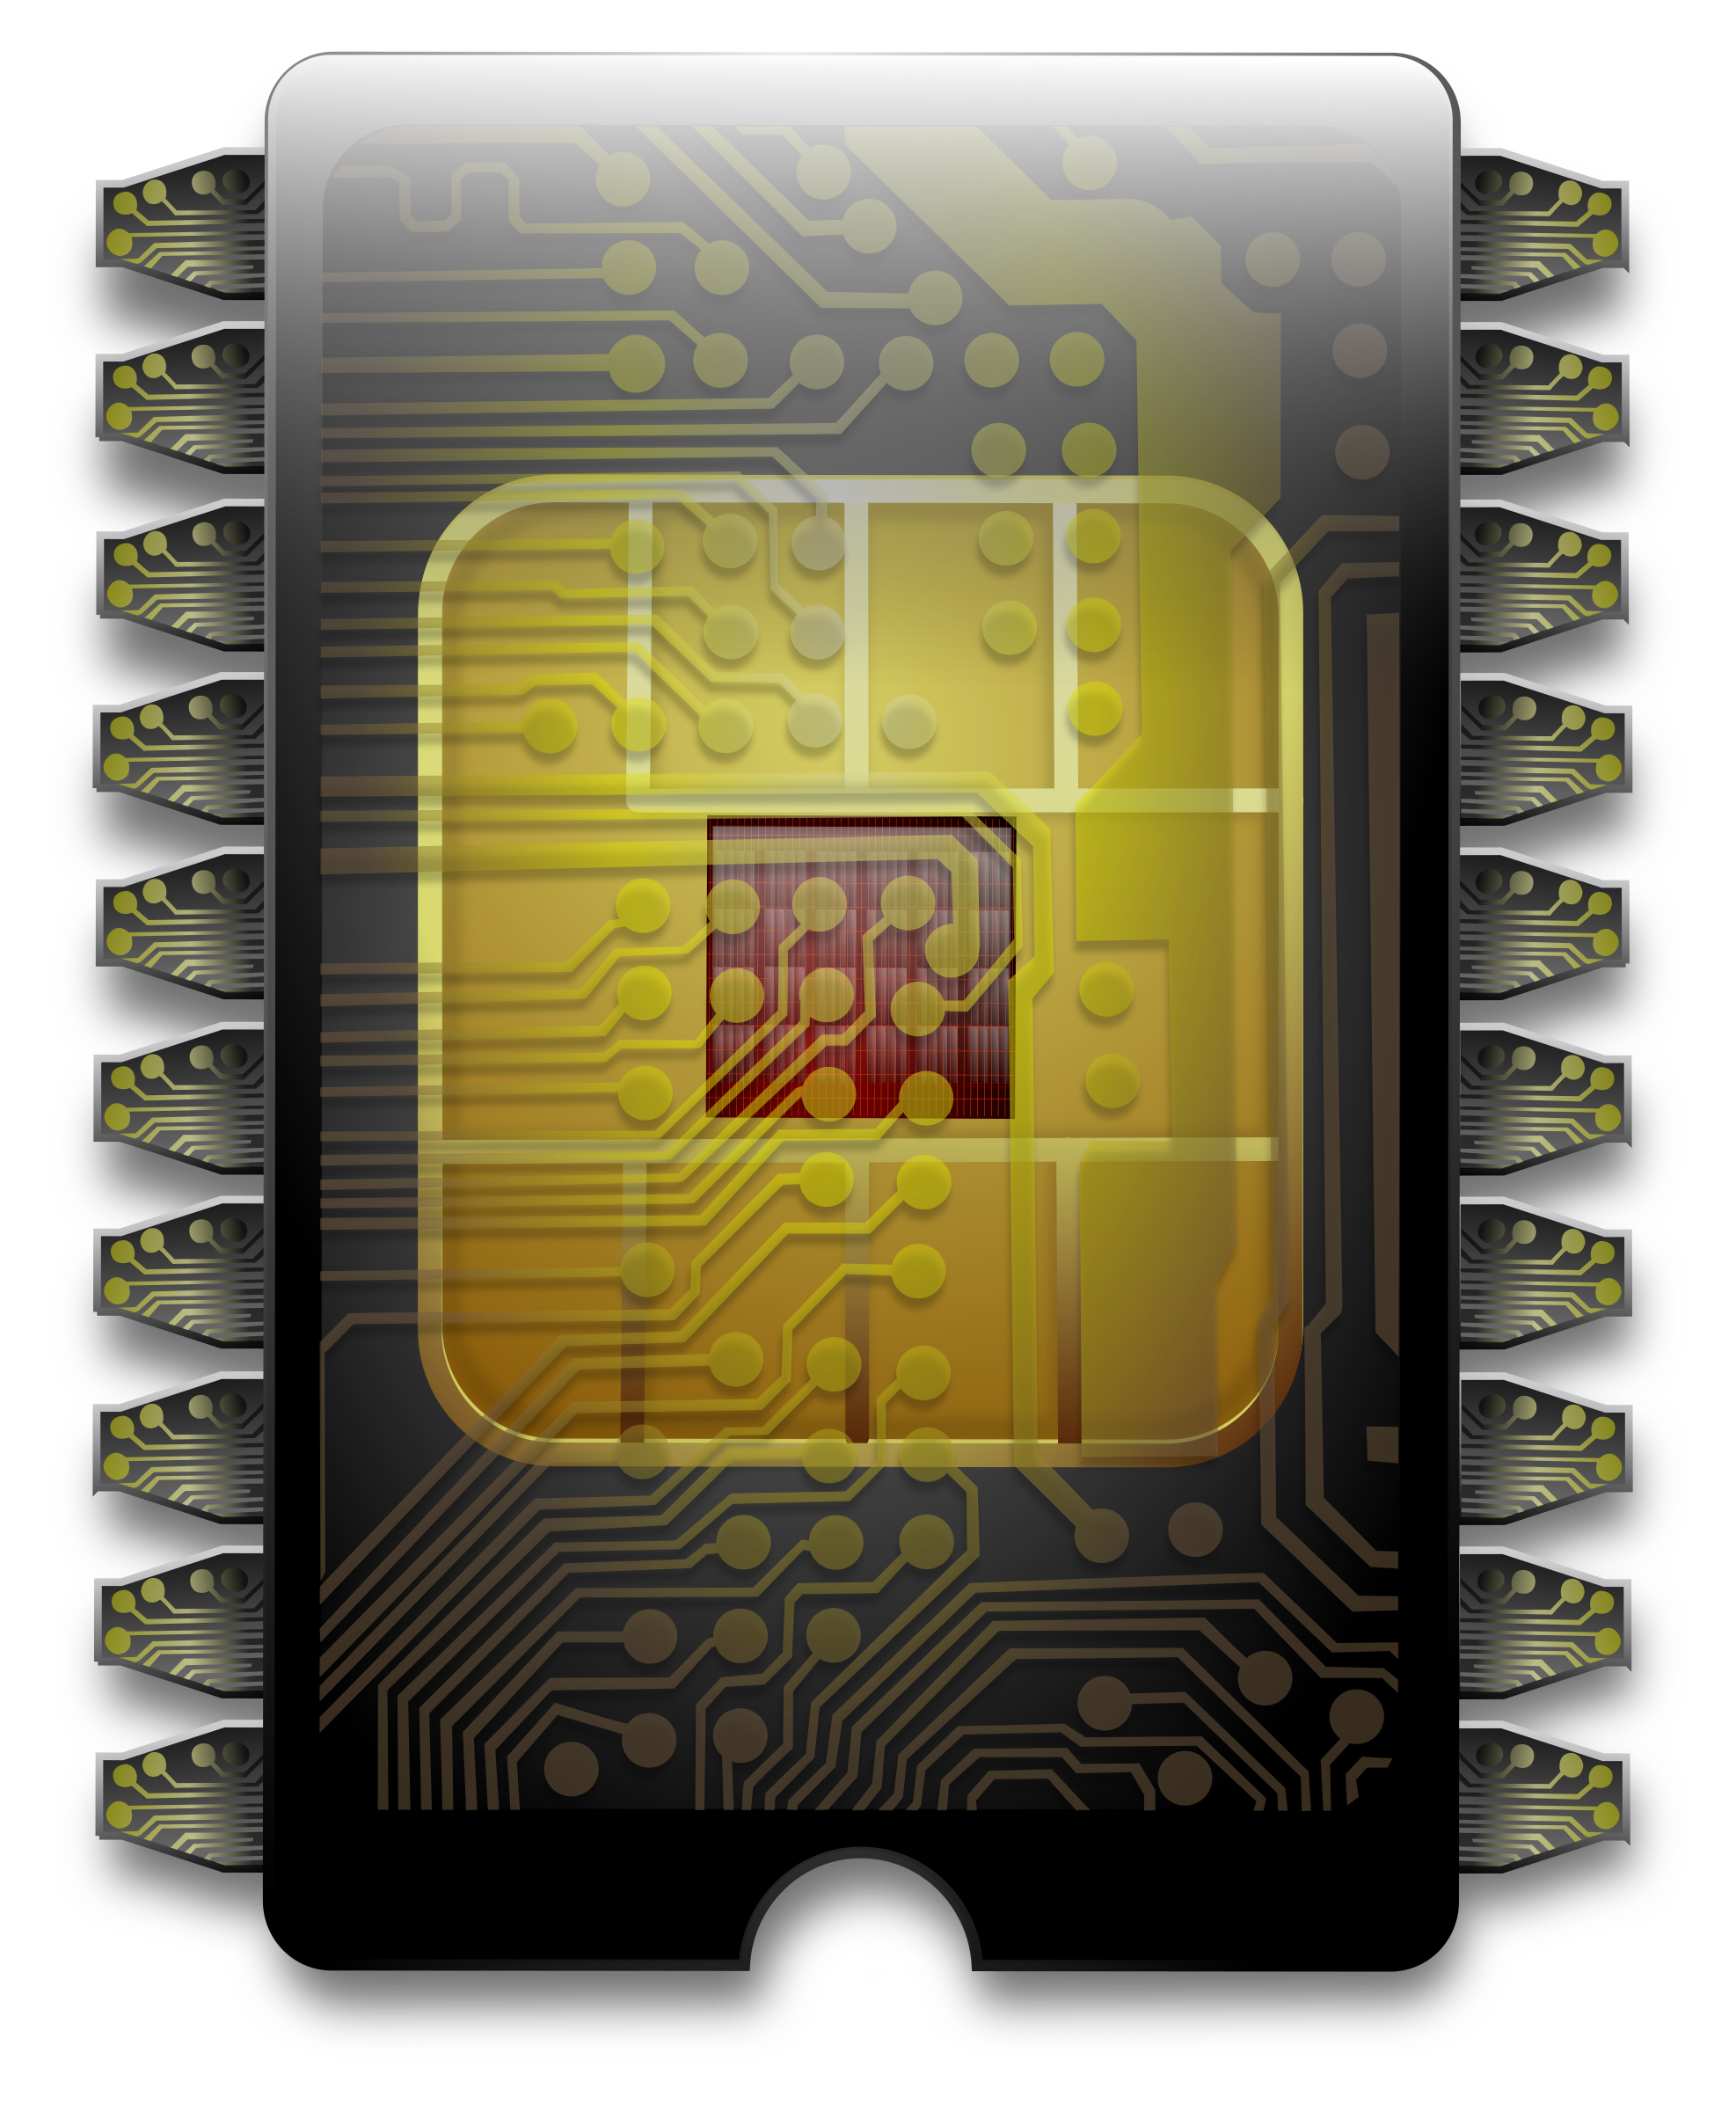 Biochip v6 by Merlin2525